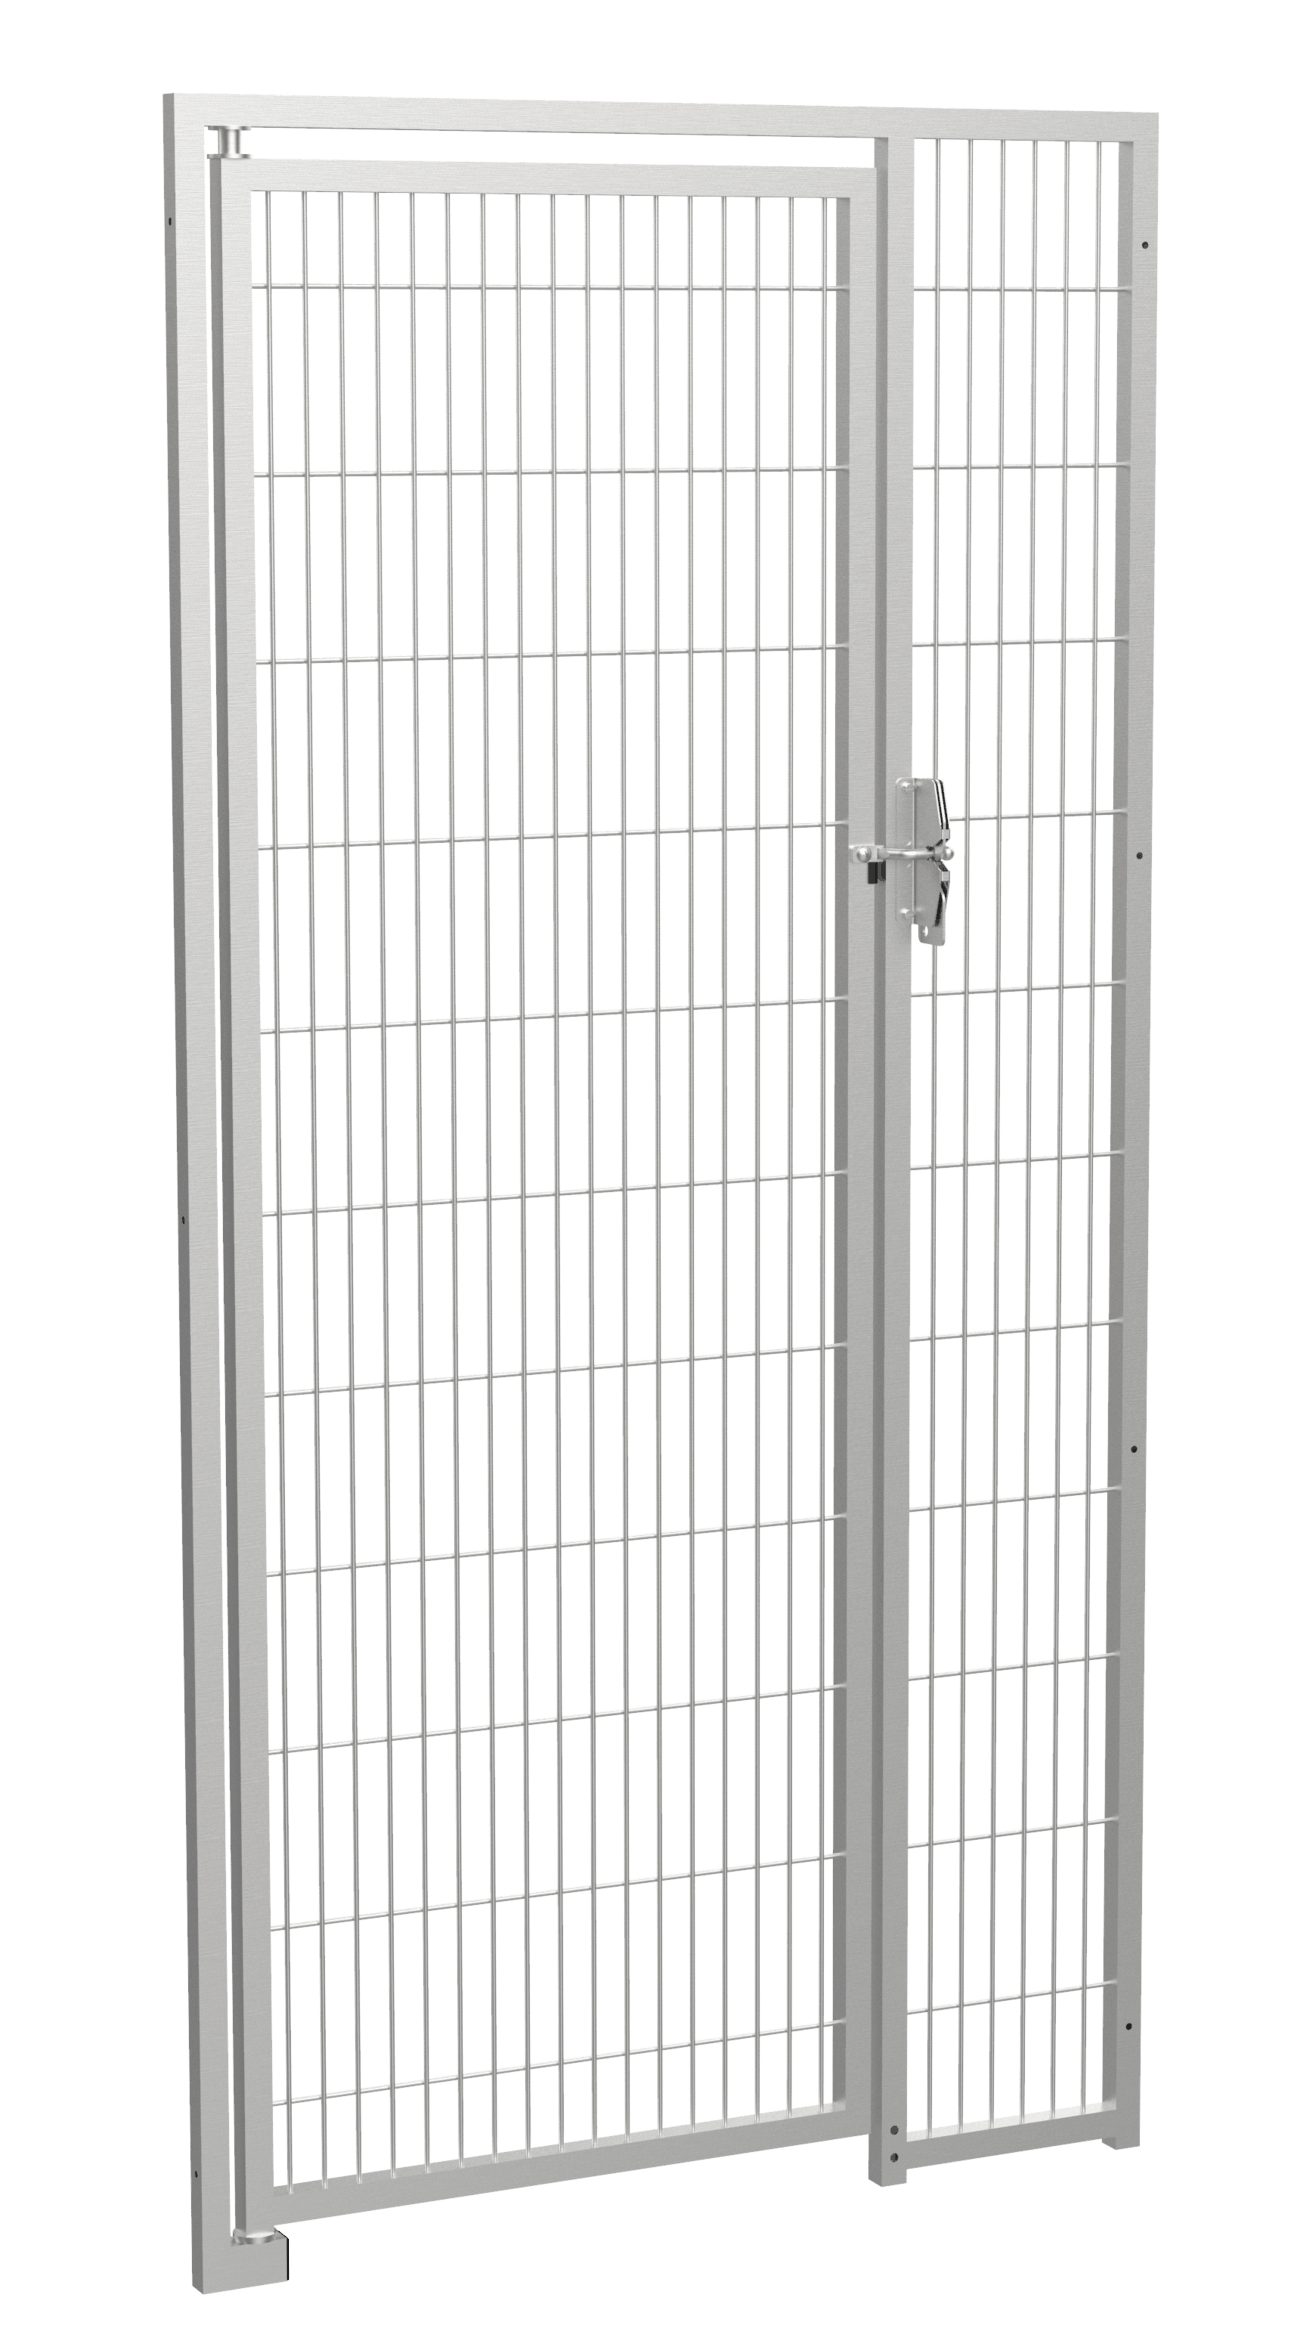 Stainless Steel Gate without Bottom Bar